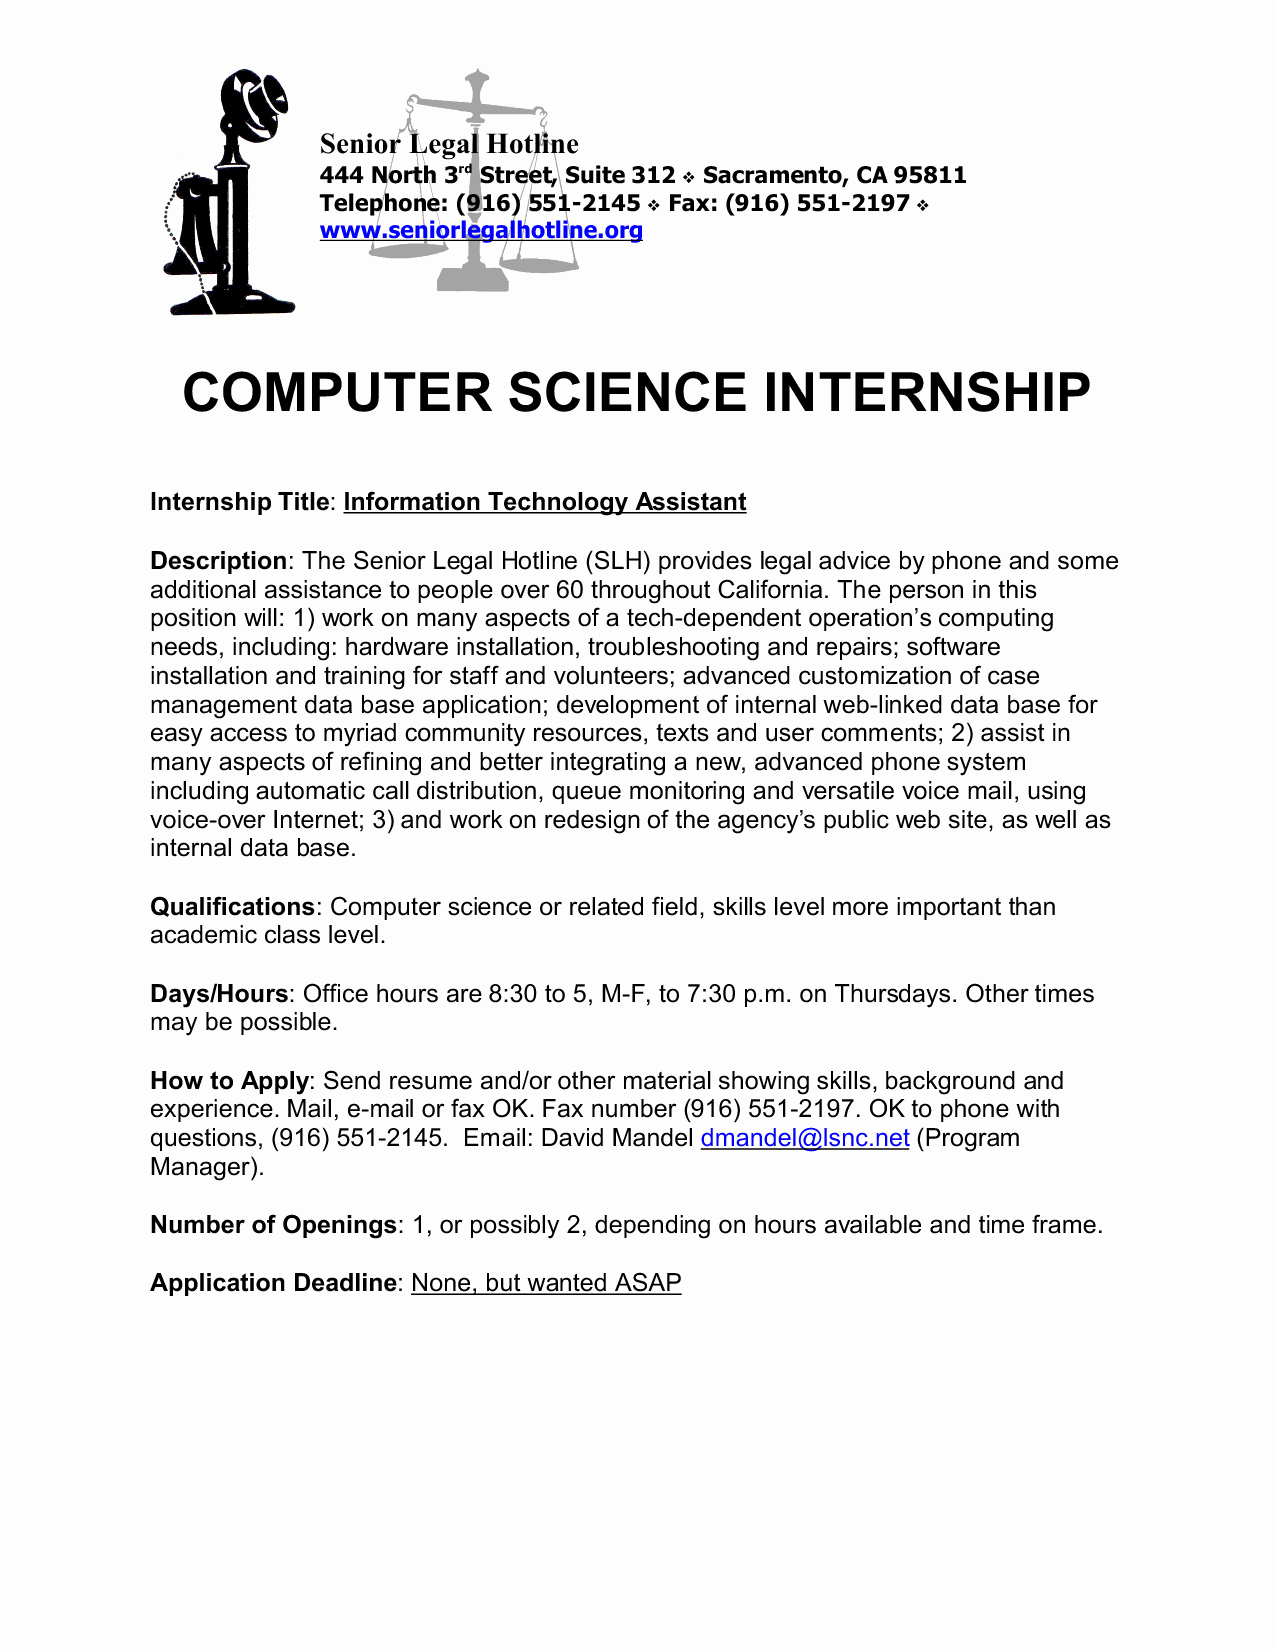 Computer Science Student Resume Luxury 13 Resume for Puter Science Internship Examples